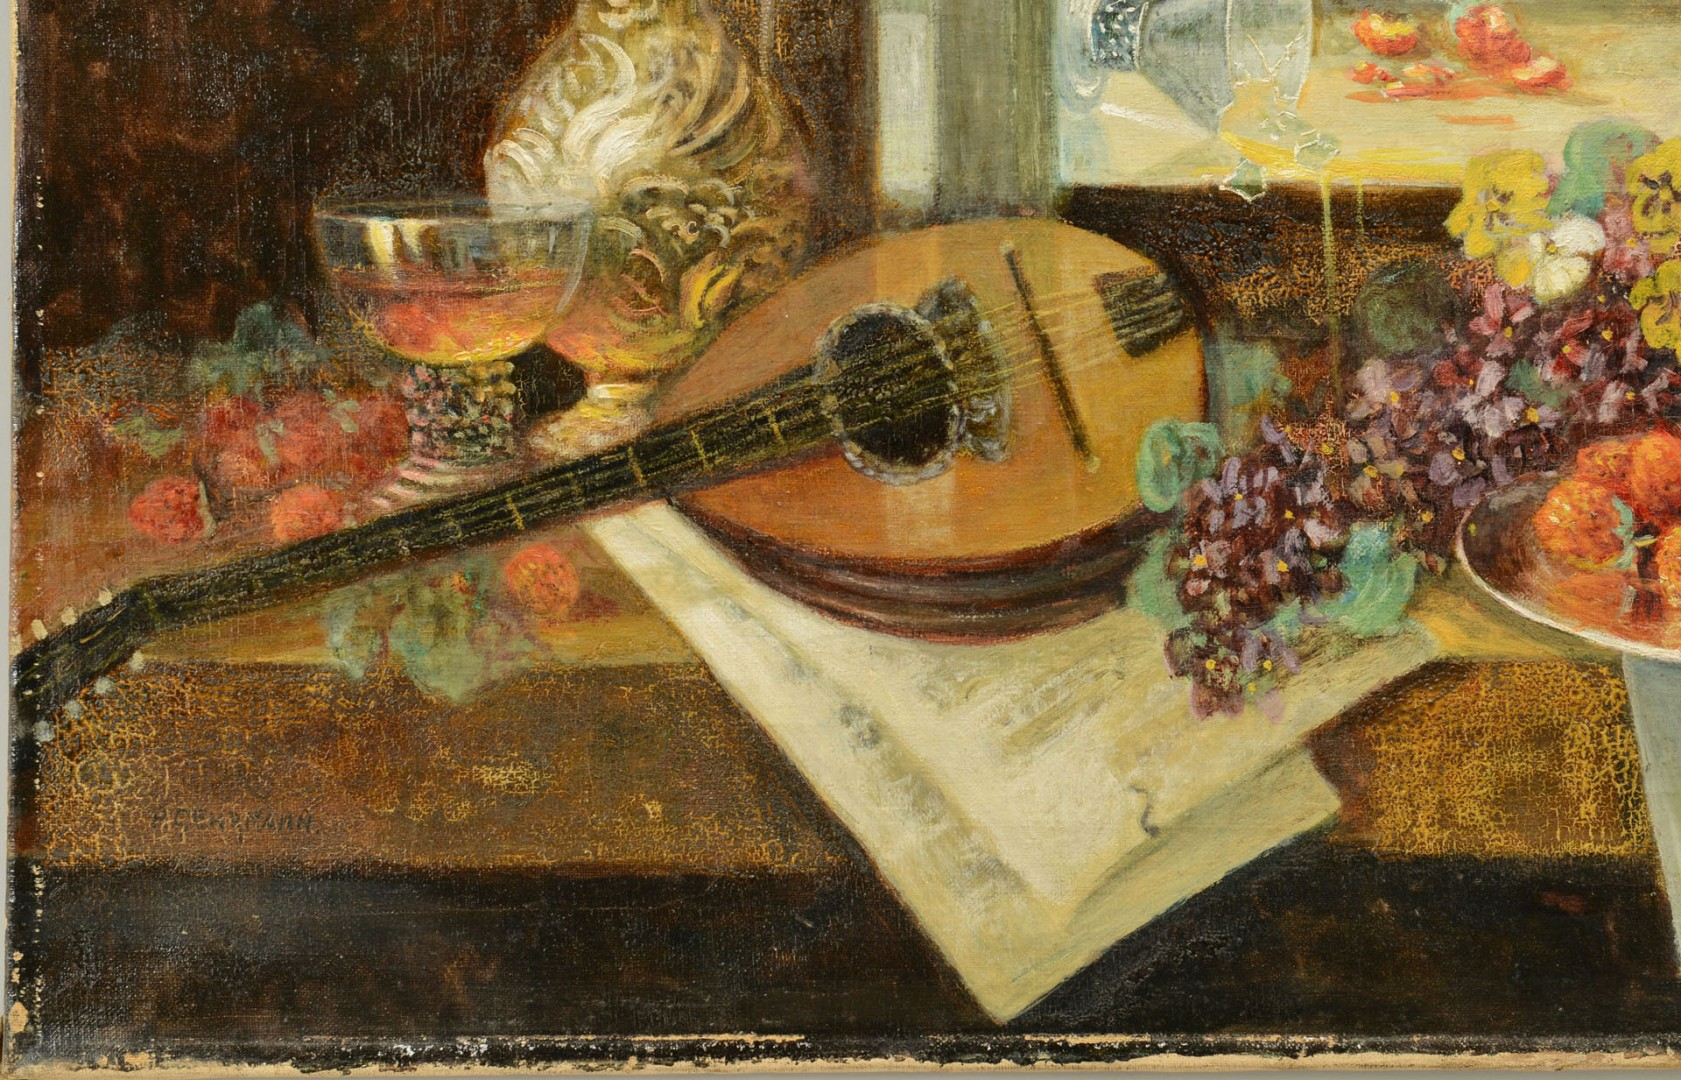 Lot 388: Paul Gehrmann, Still Life, Oil on Canvas